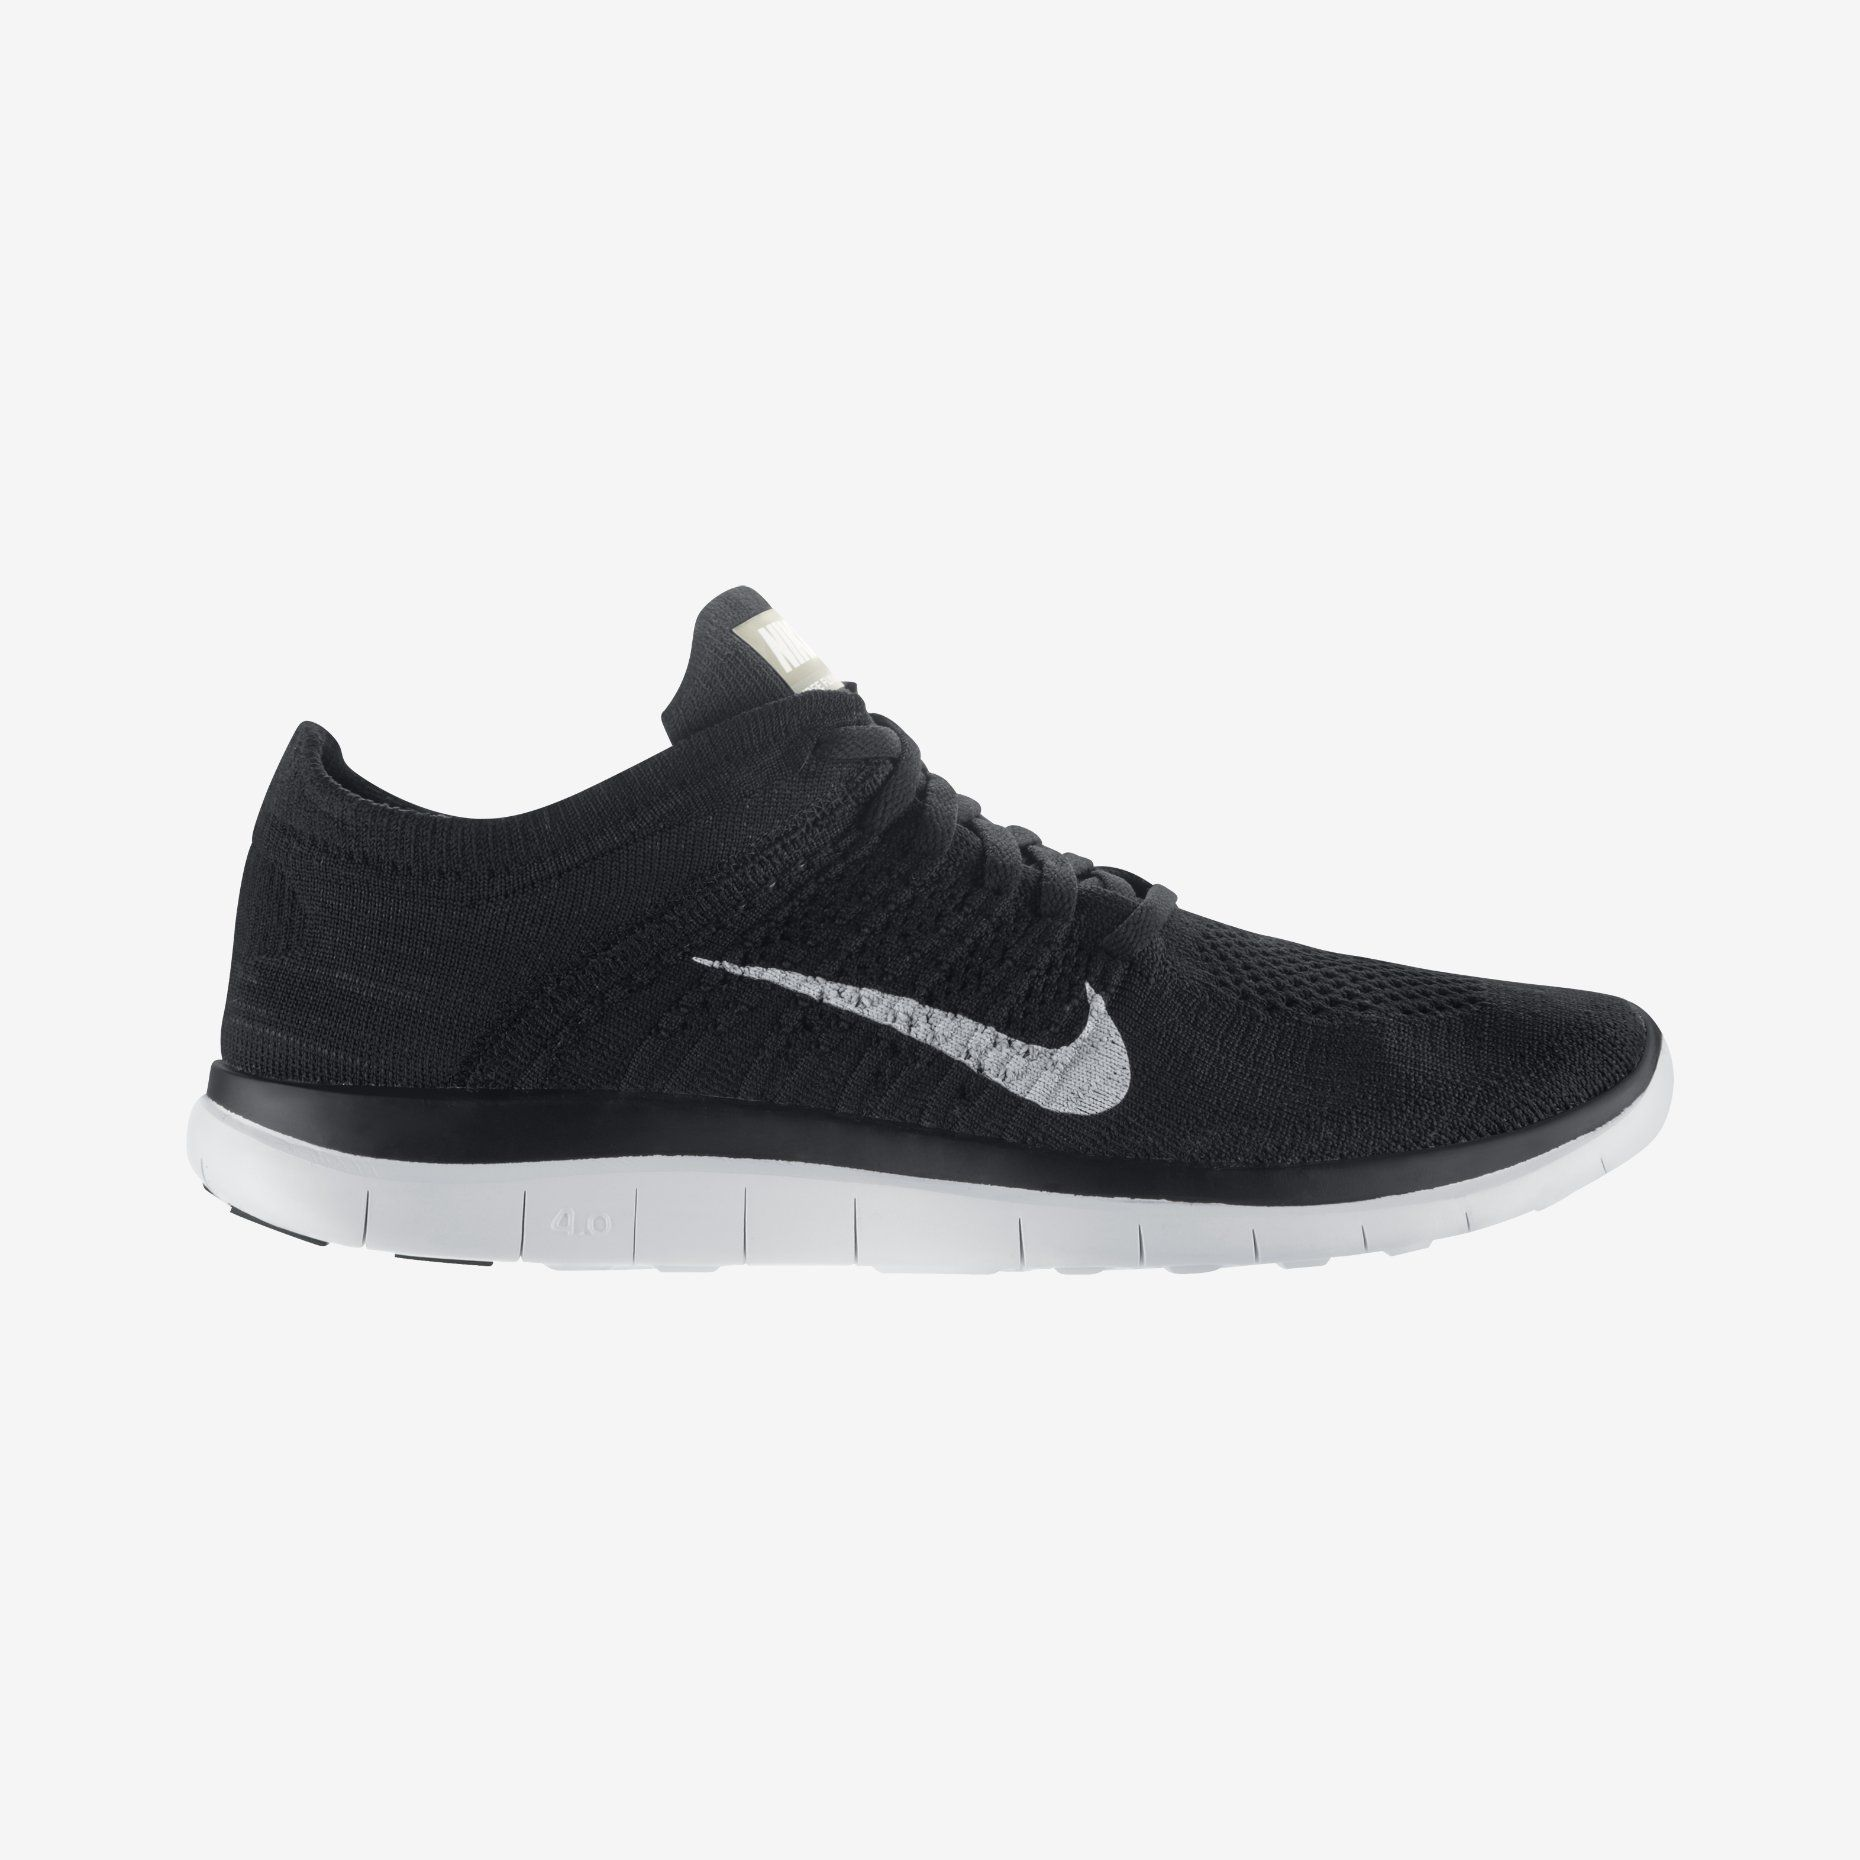 reputable site 3a3e3 f5450 Nike Free 4.0 Flyknit – Chaussure de running pour Homme